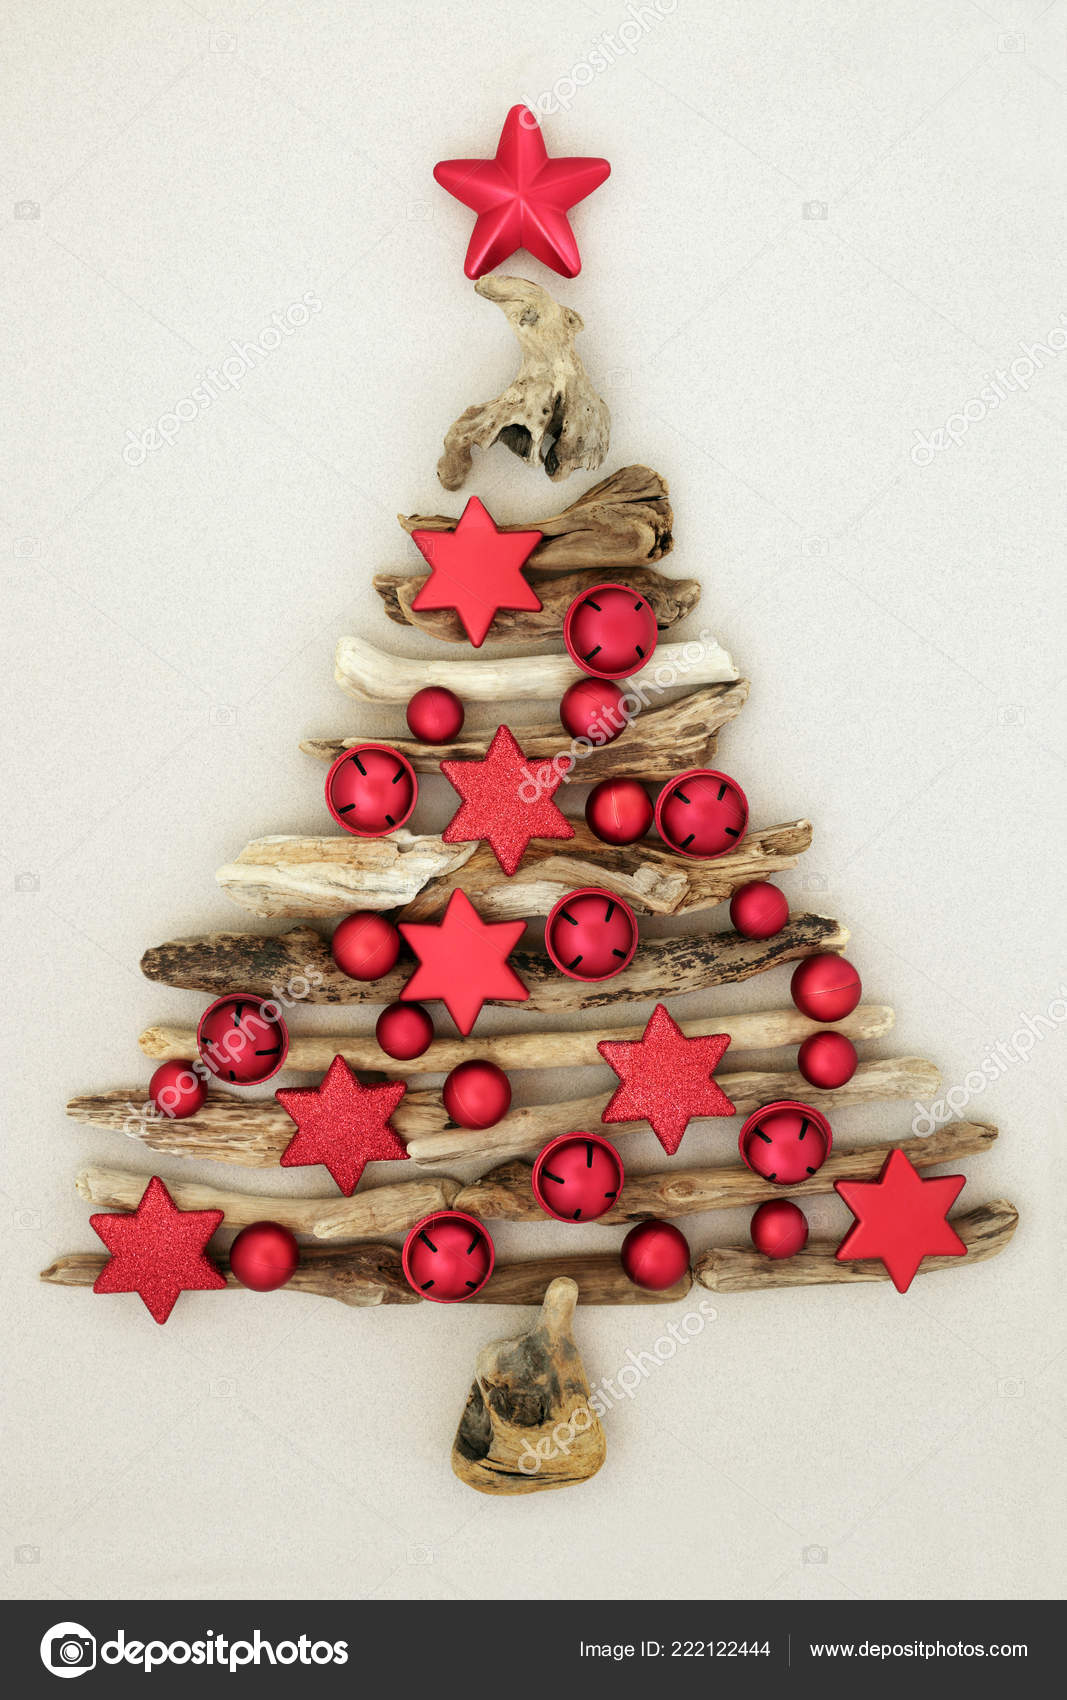 Abstract Driftwood Christmas Tree Red Bauble Star Bell Decorations Mottled Stock Photo C Marilyna 222122444